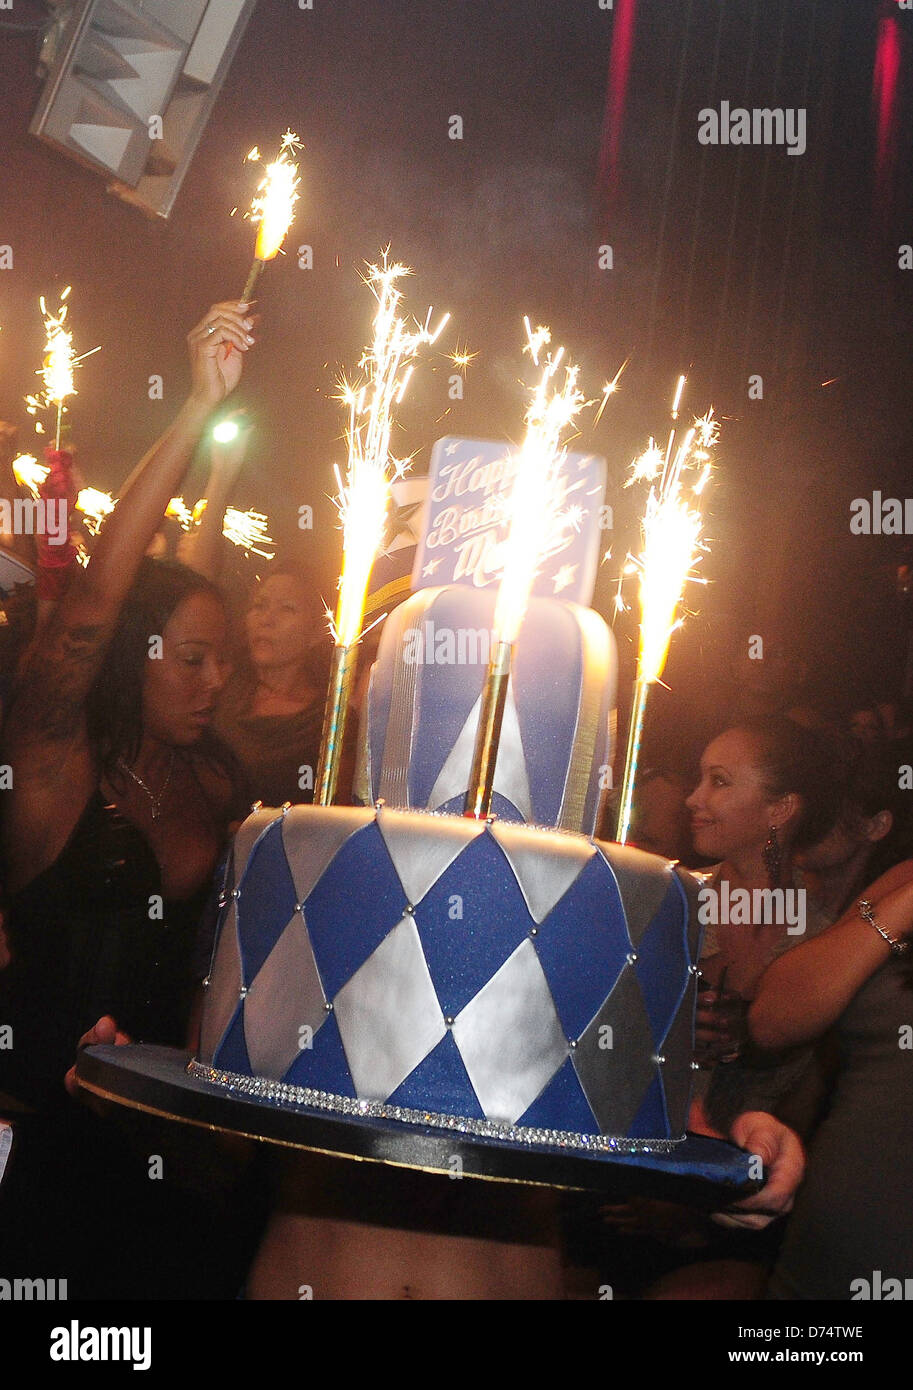 Marlon Wayanss Birthday Cake Wayans Celebrates His 39th At Mansion Nightclub Miami Beach Florida